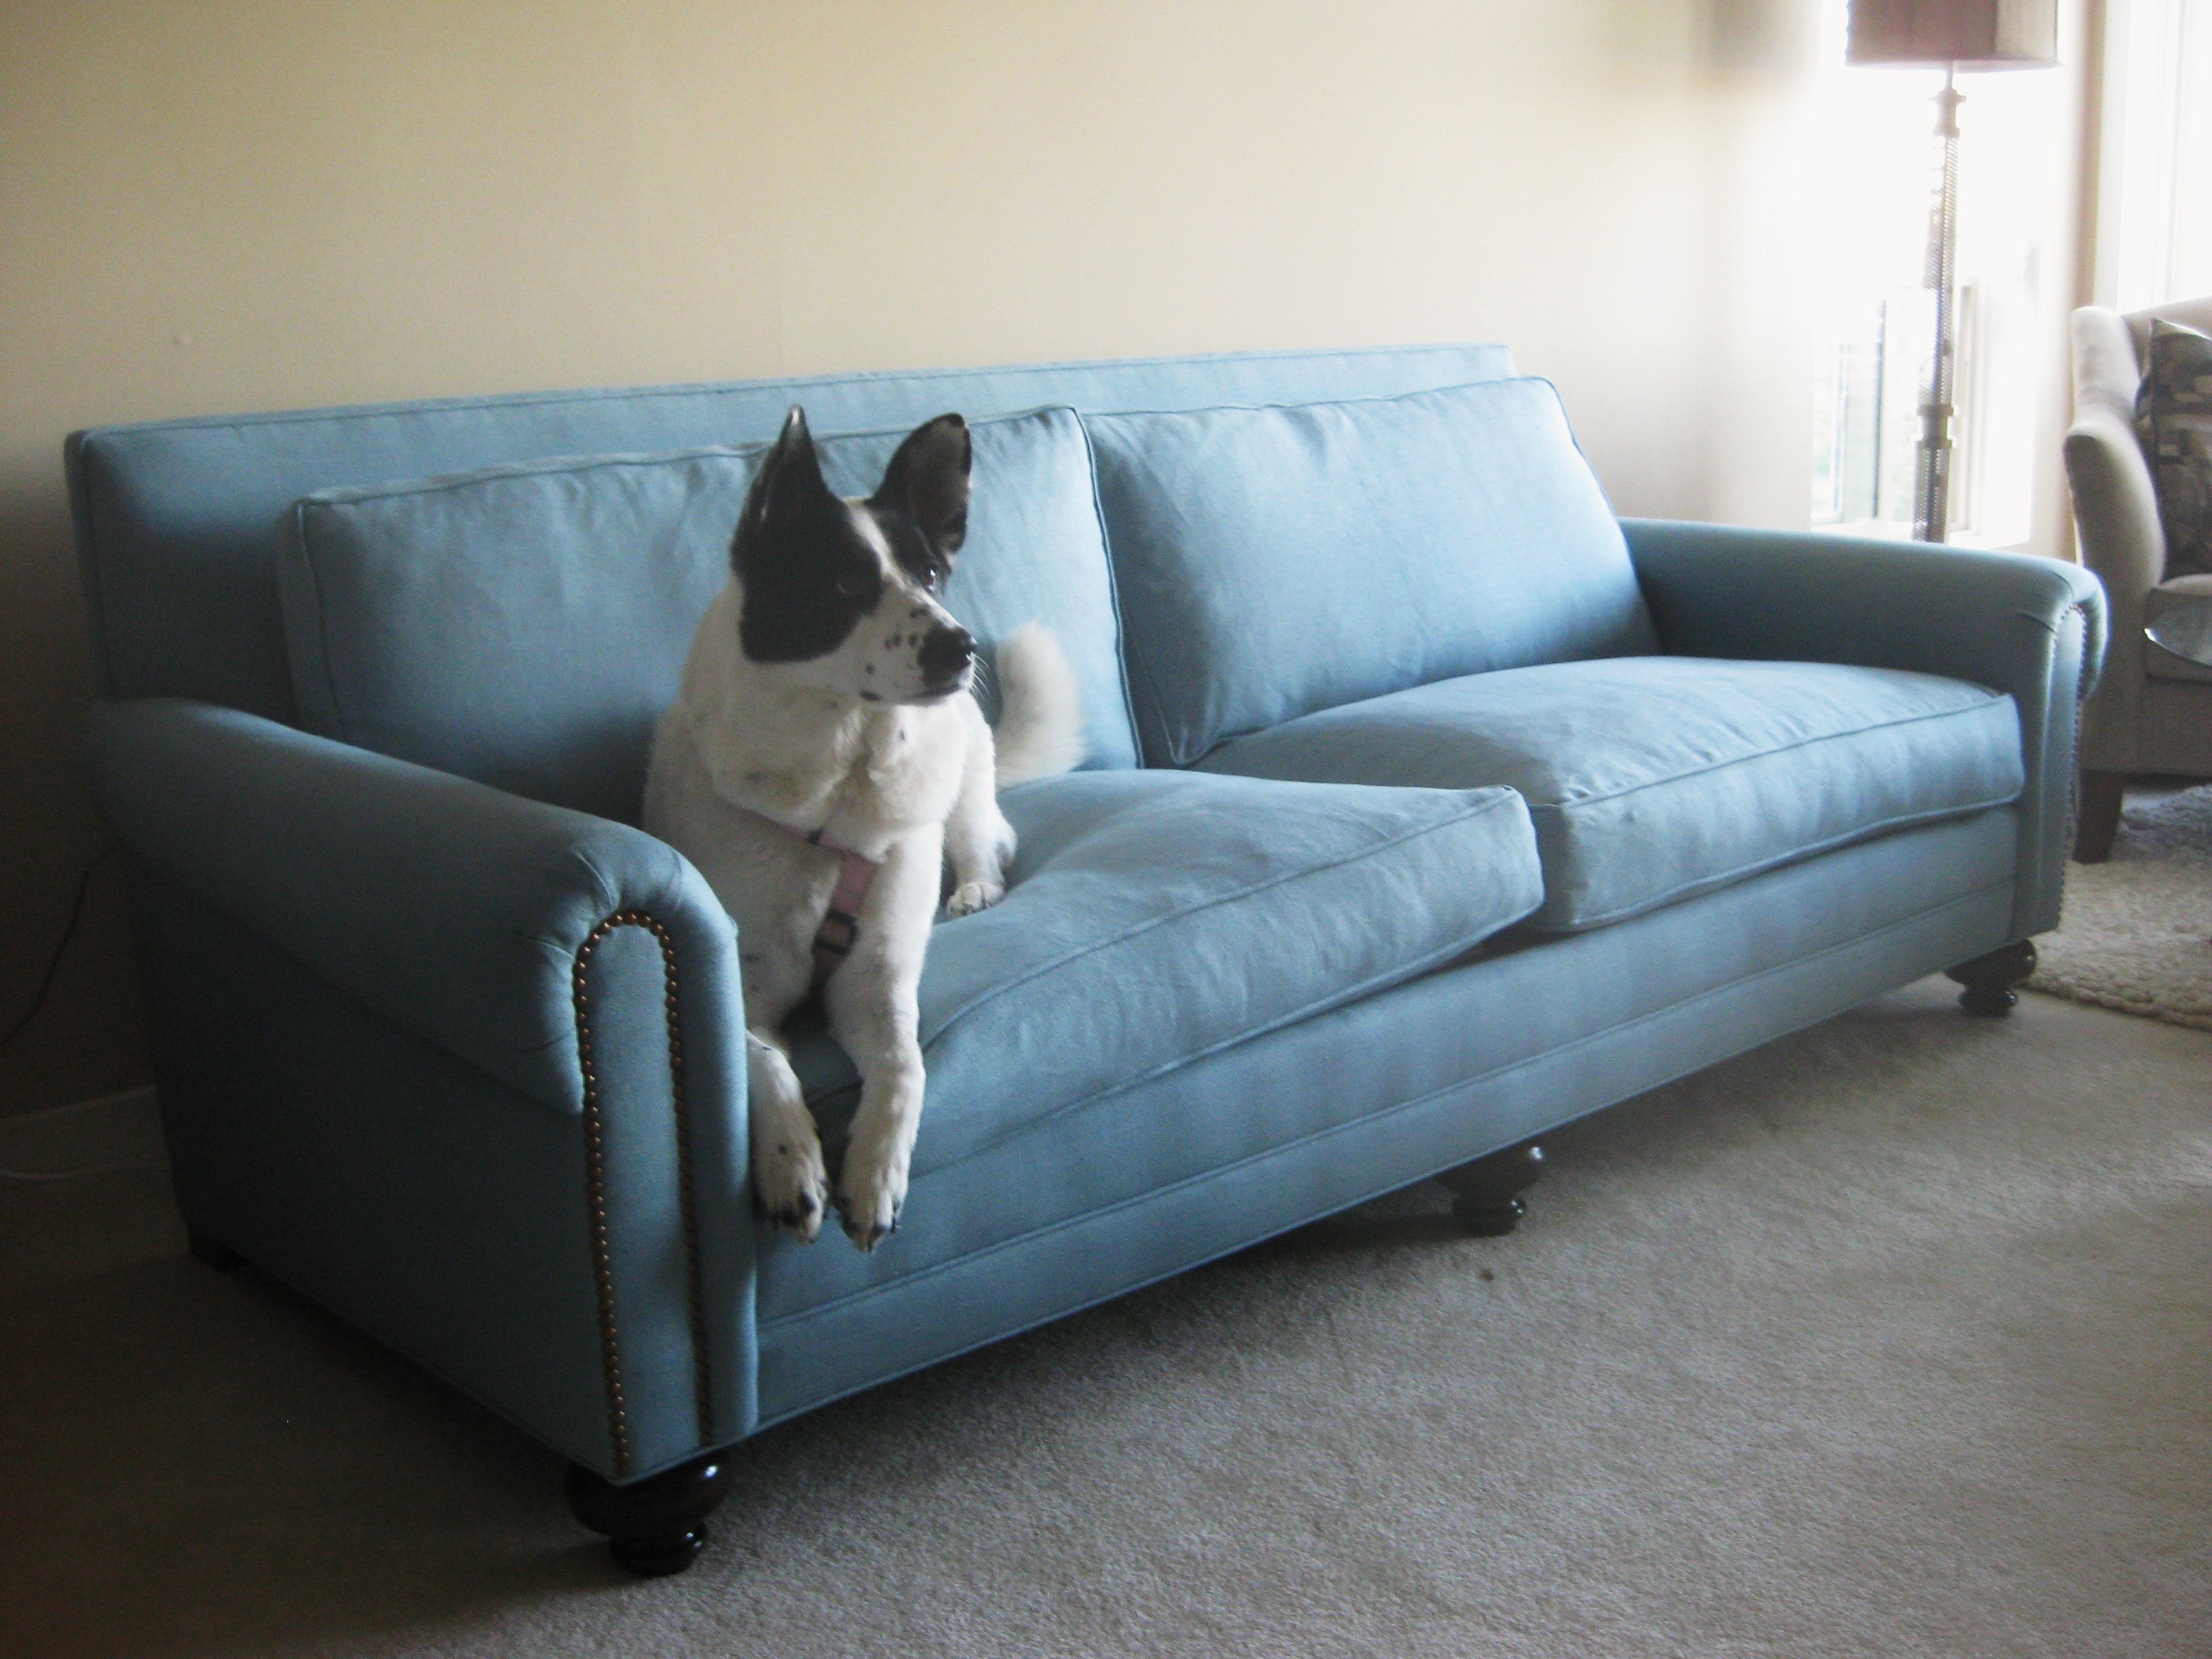 custom sofas seattle wa balkarp sofa bed black couch to the inch seating at non